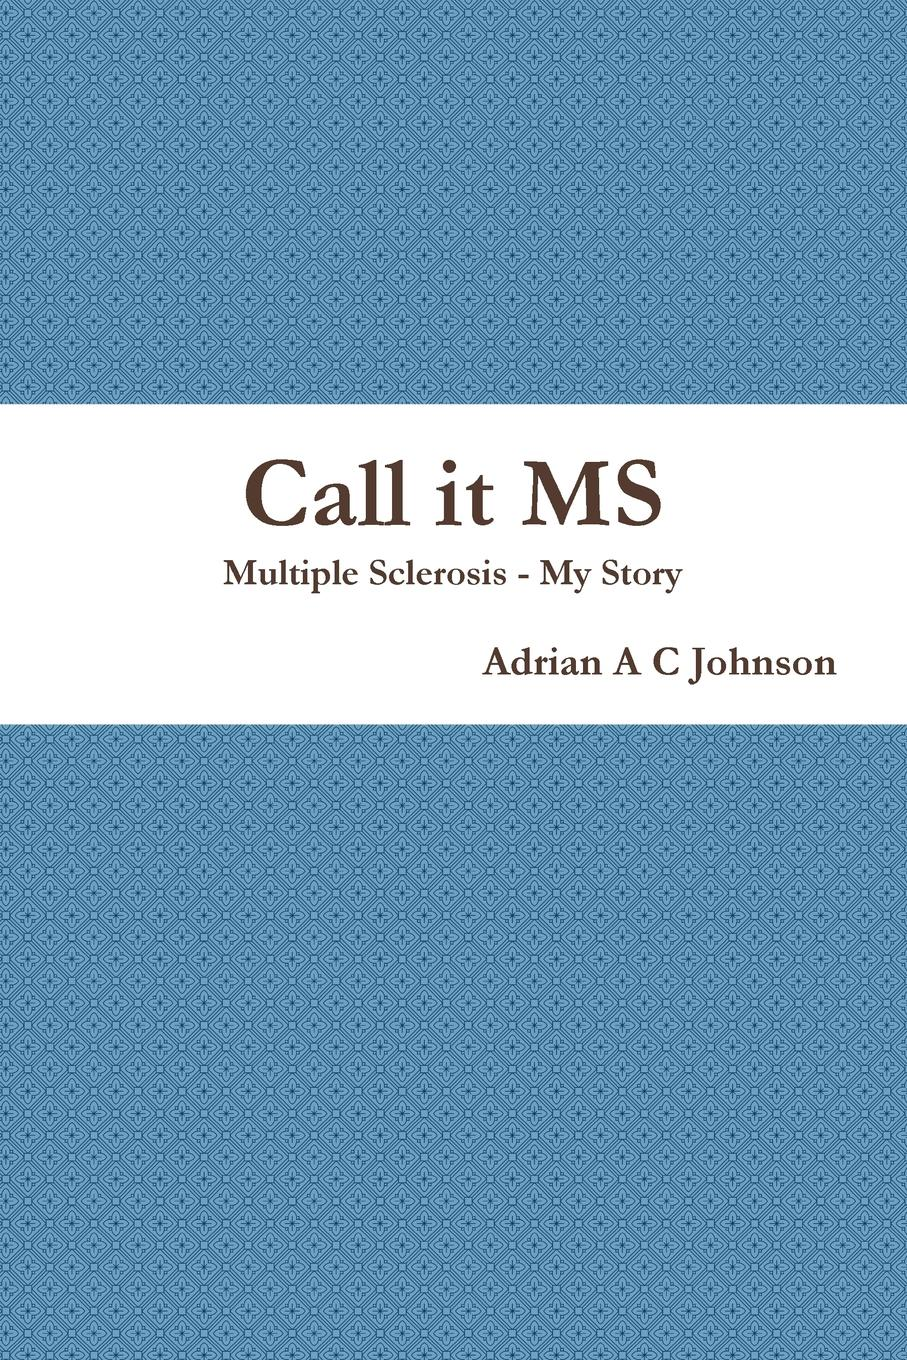 цена на Adrian A C Johnson Call it MS